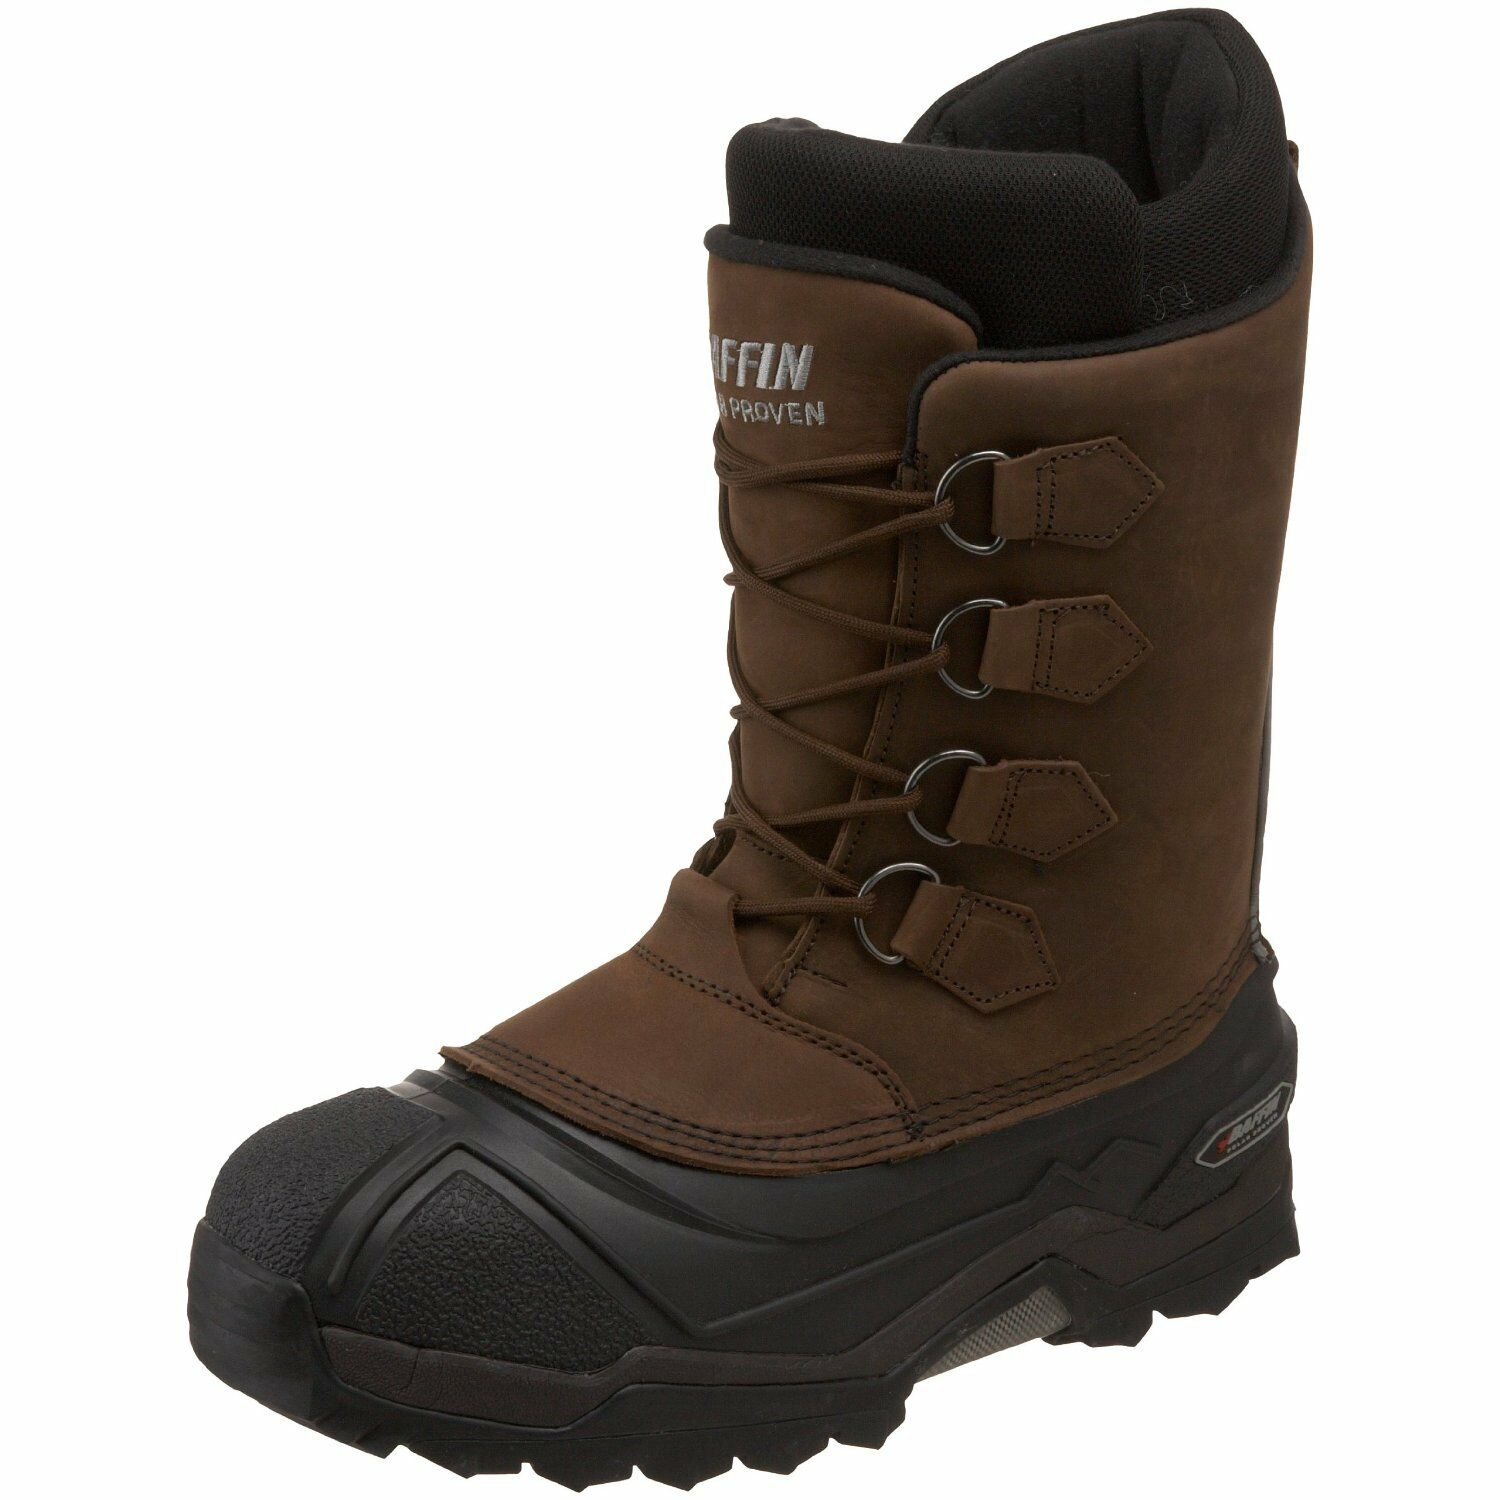 Baffin Winter Boots Control Max - Bark - Waterproof - 7100-1364- Bis -70°C